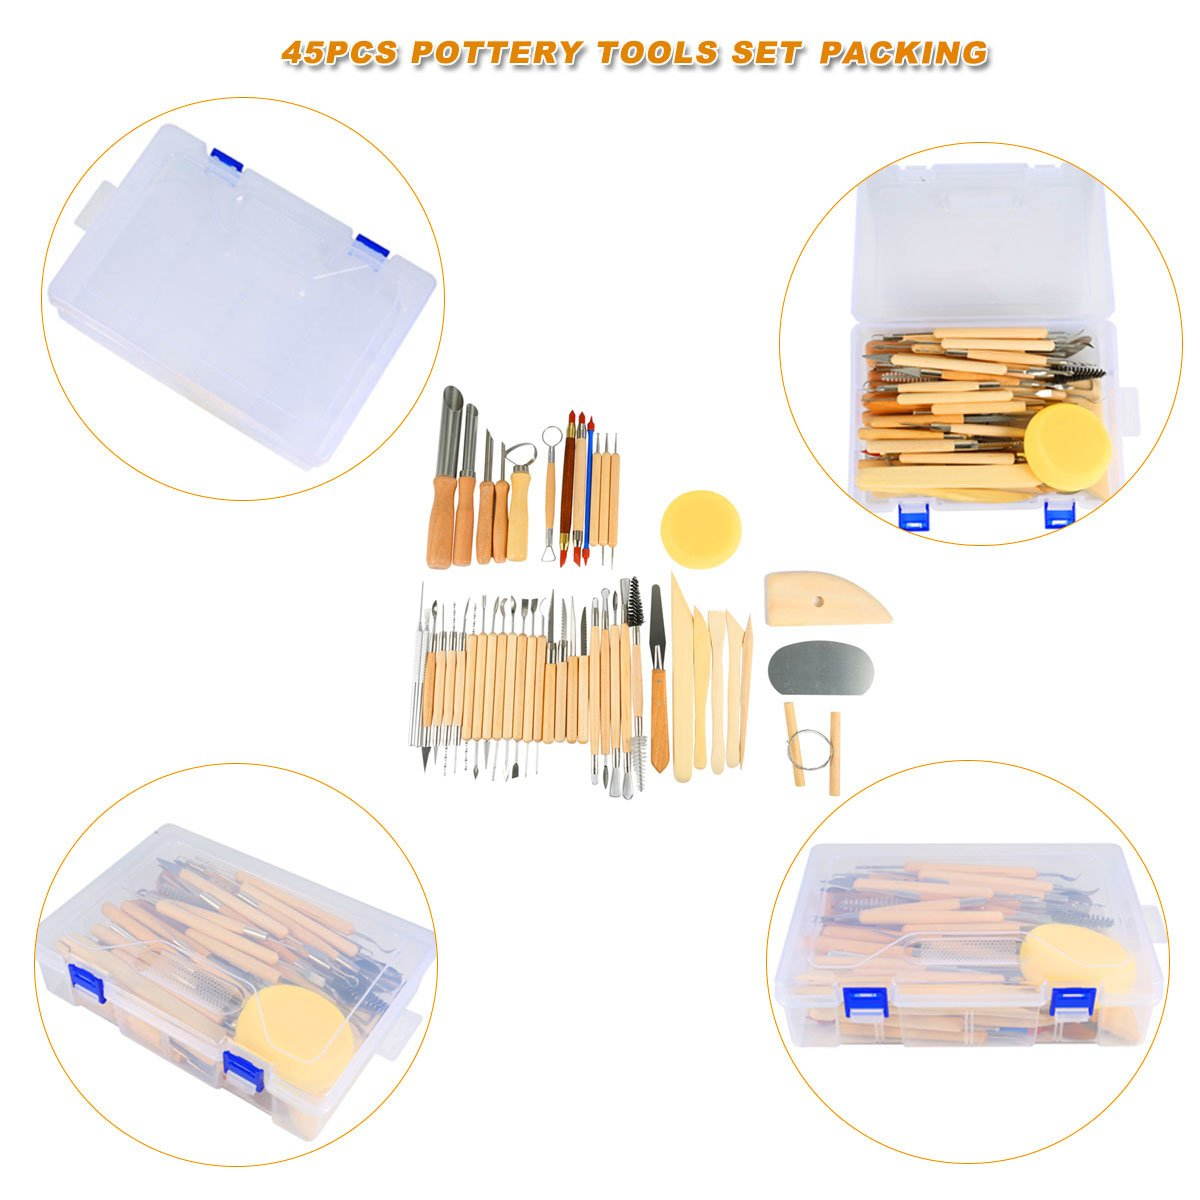 Hotab 45pcs Set Wooden Pottery & Clay Sculpting Tools with Plastic Case by Hotab (Image #6)